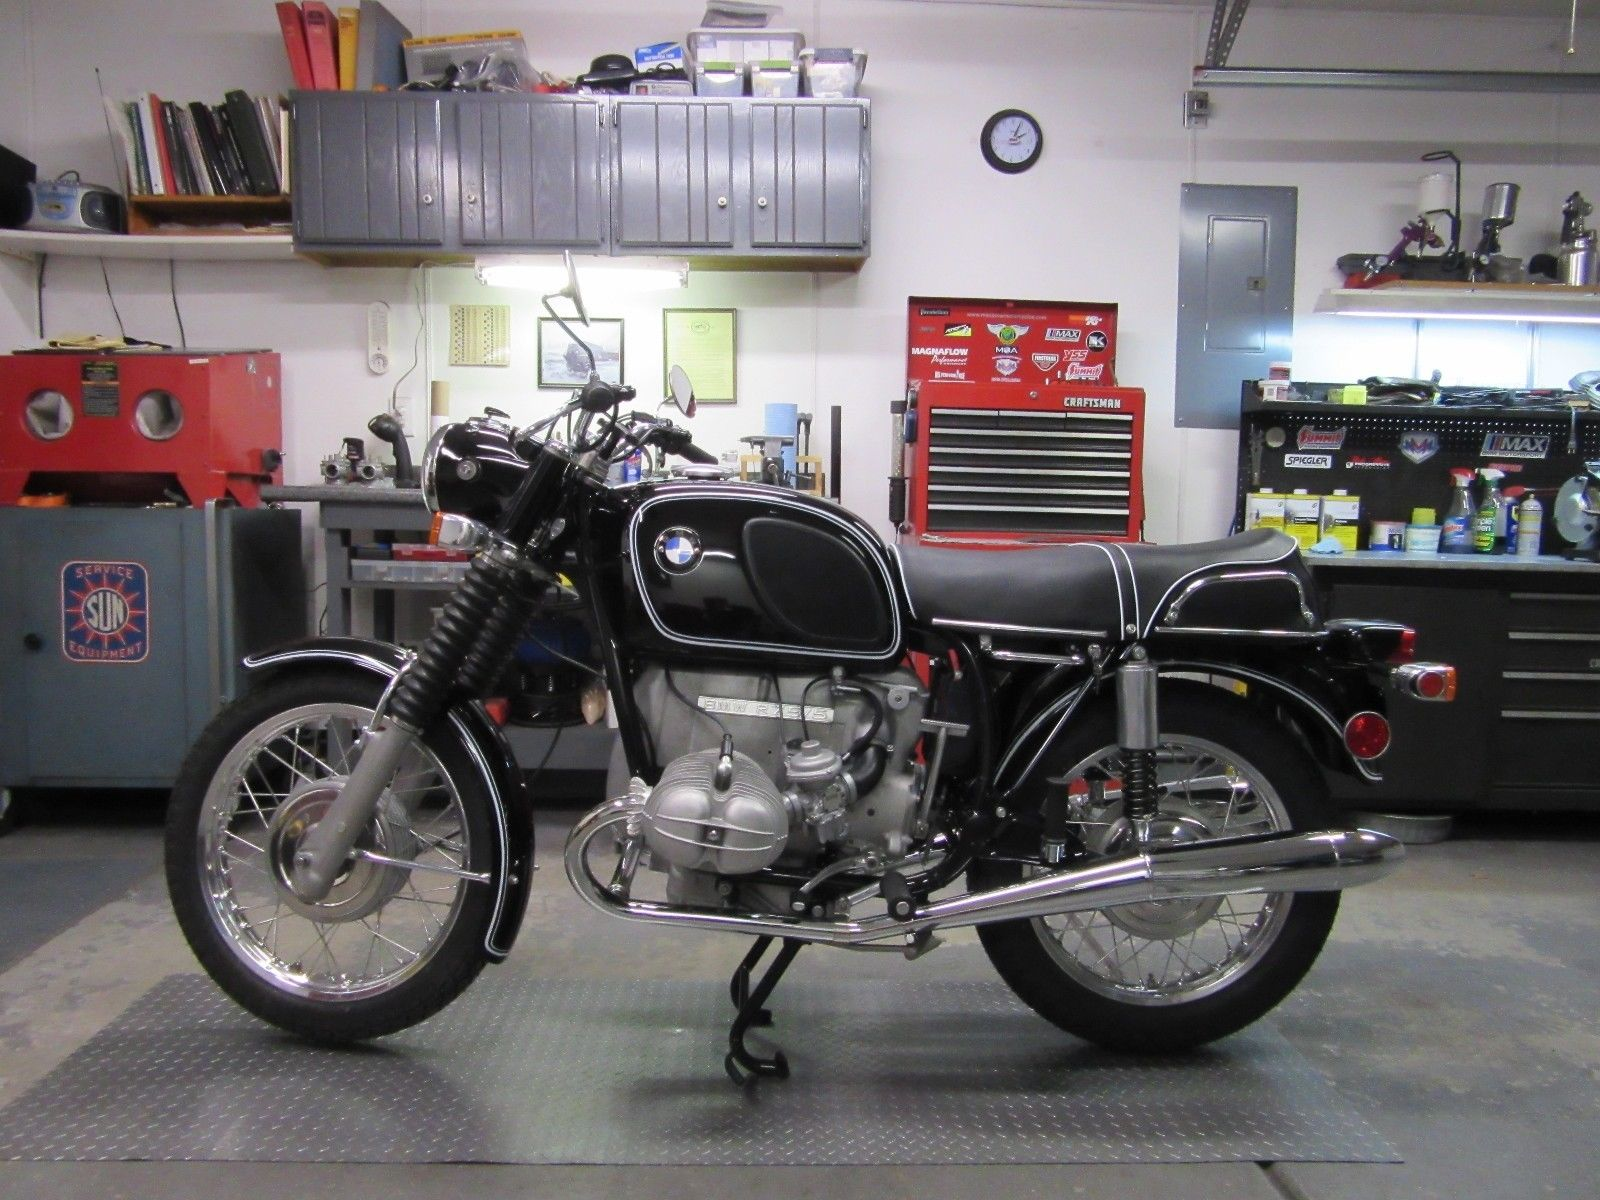 Restored Bmw R75 5 1971 Photographs At Classic Bikes